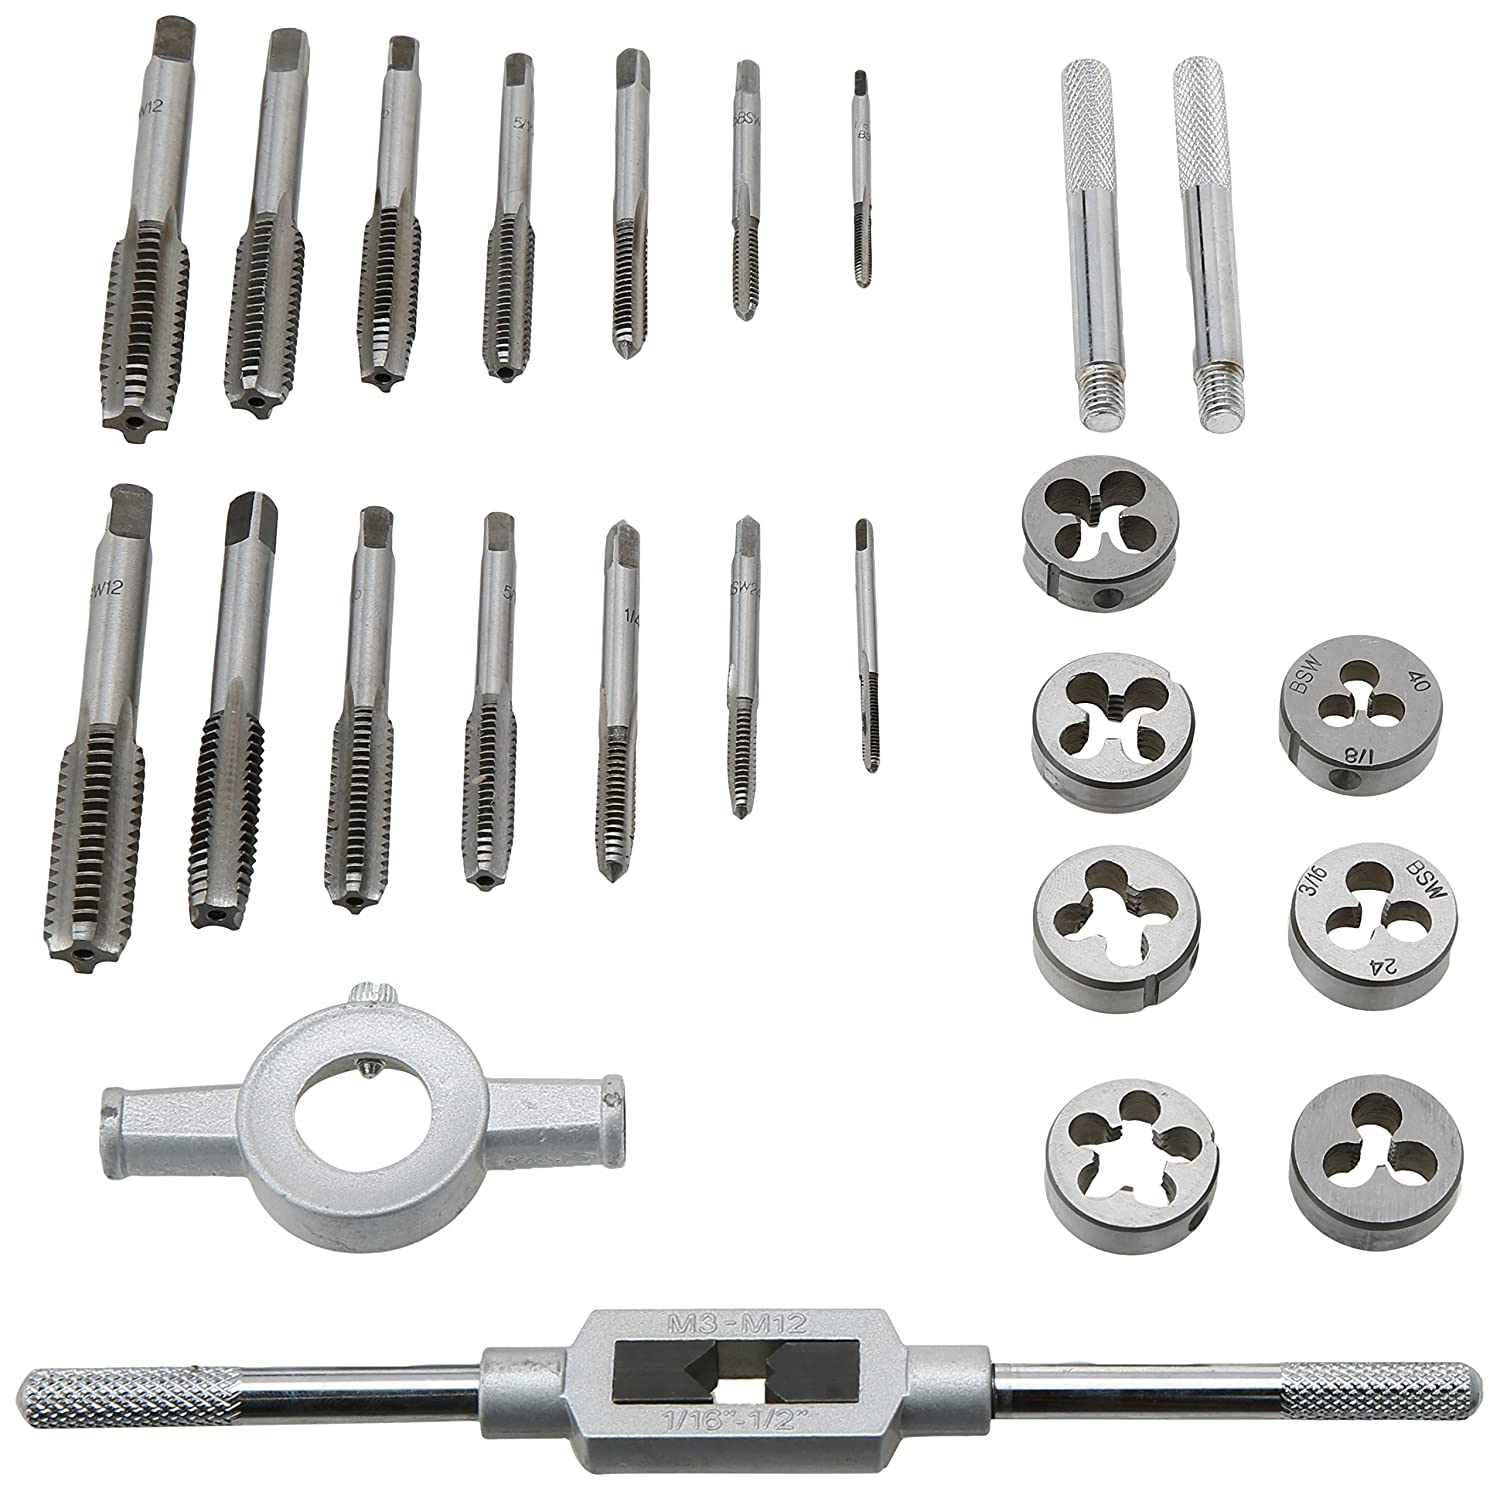 23 Piece Whitworth Tap and Die Set TP126 Toolzone